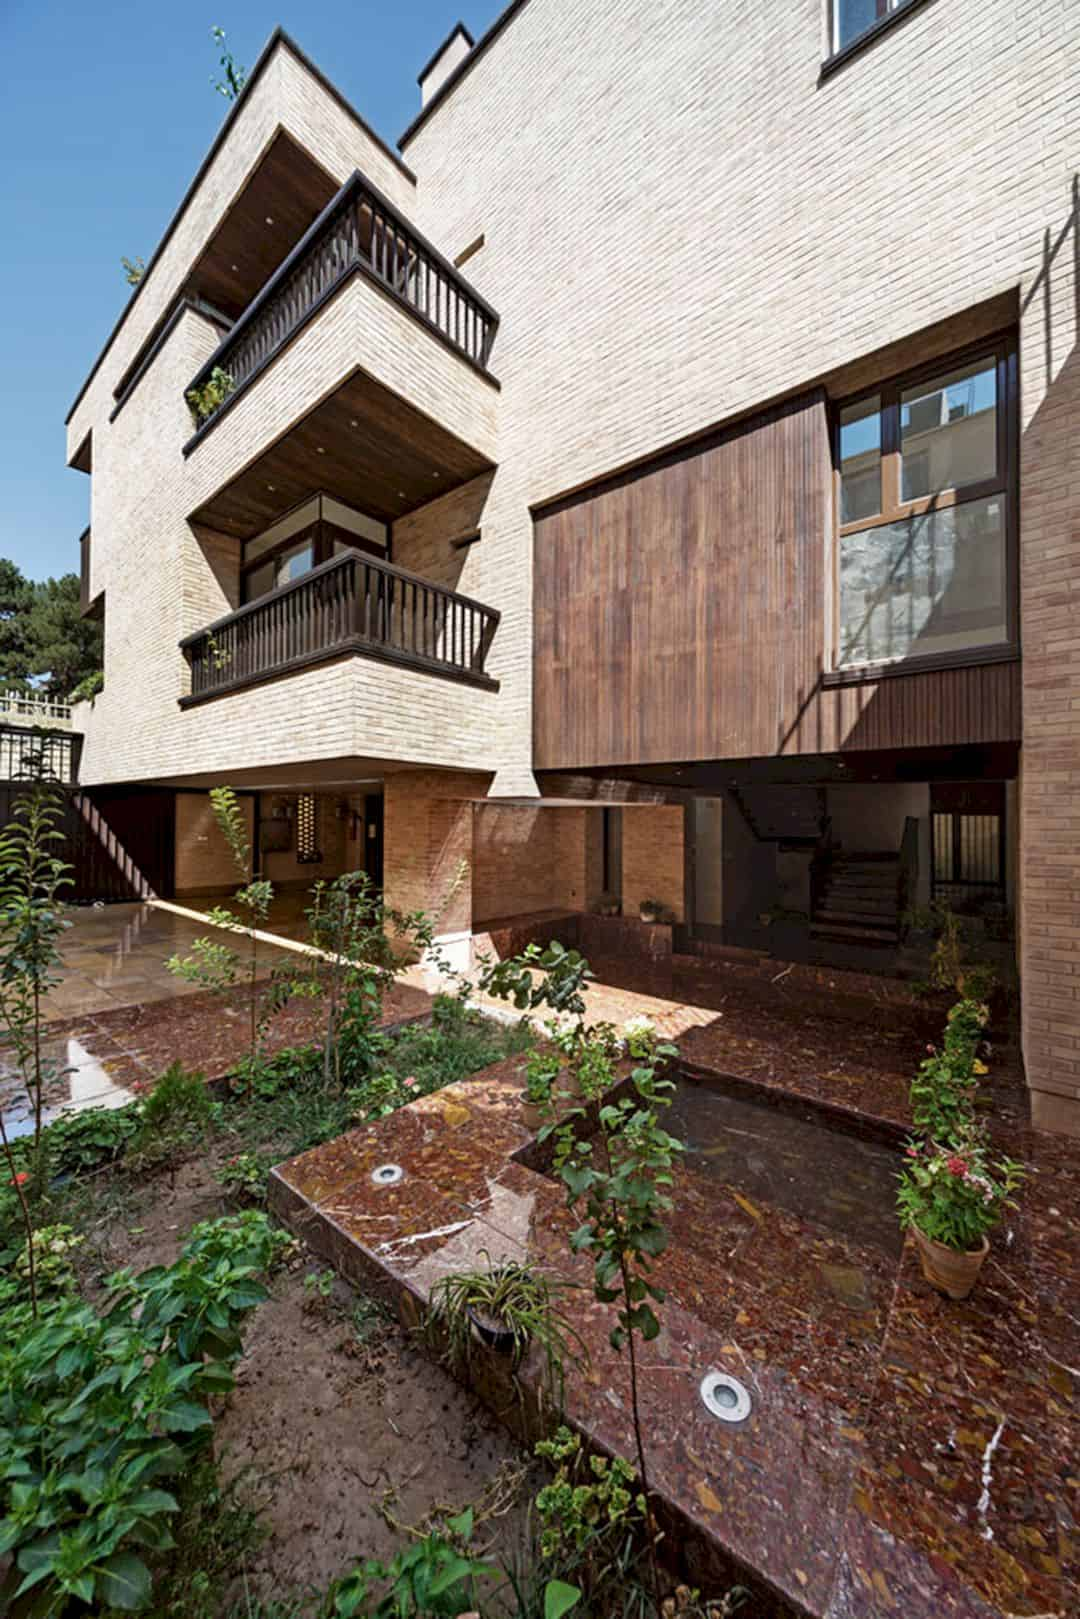 Farvardin House A Living Place With Green Spaces 8